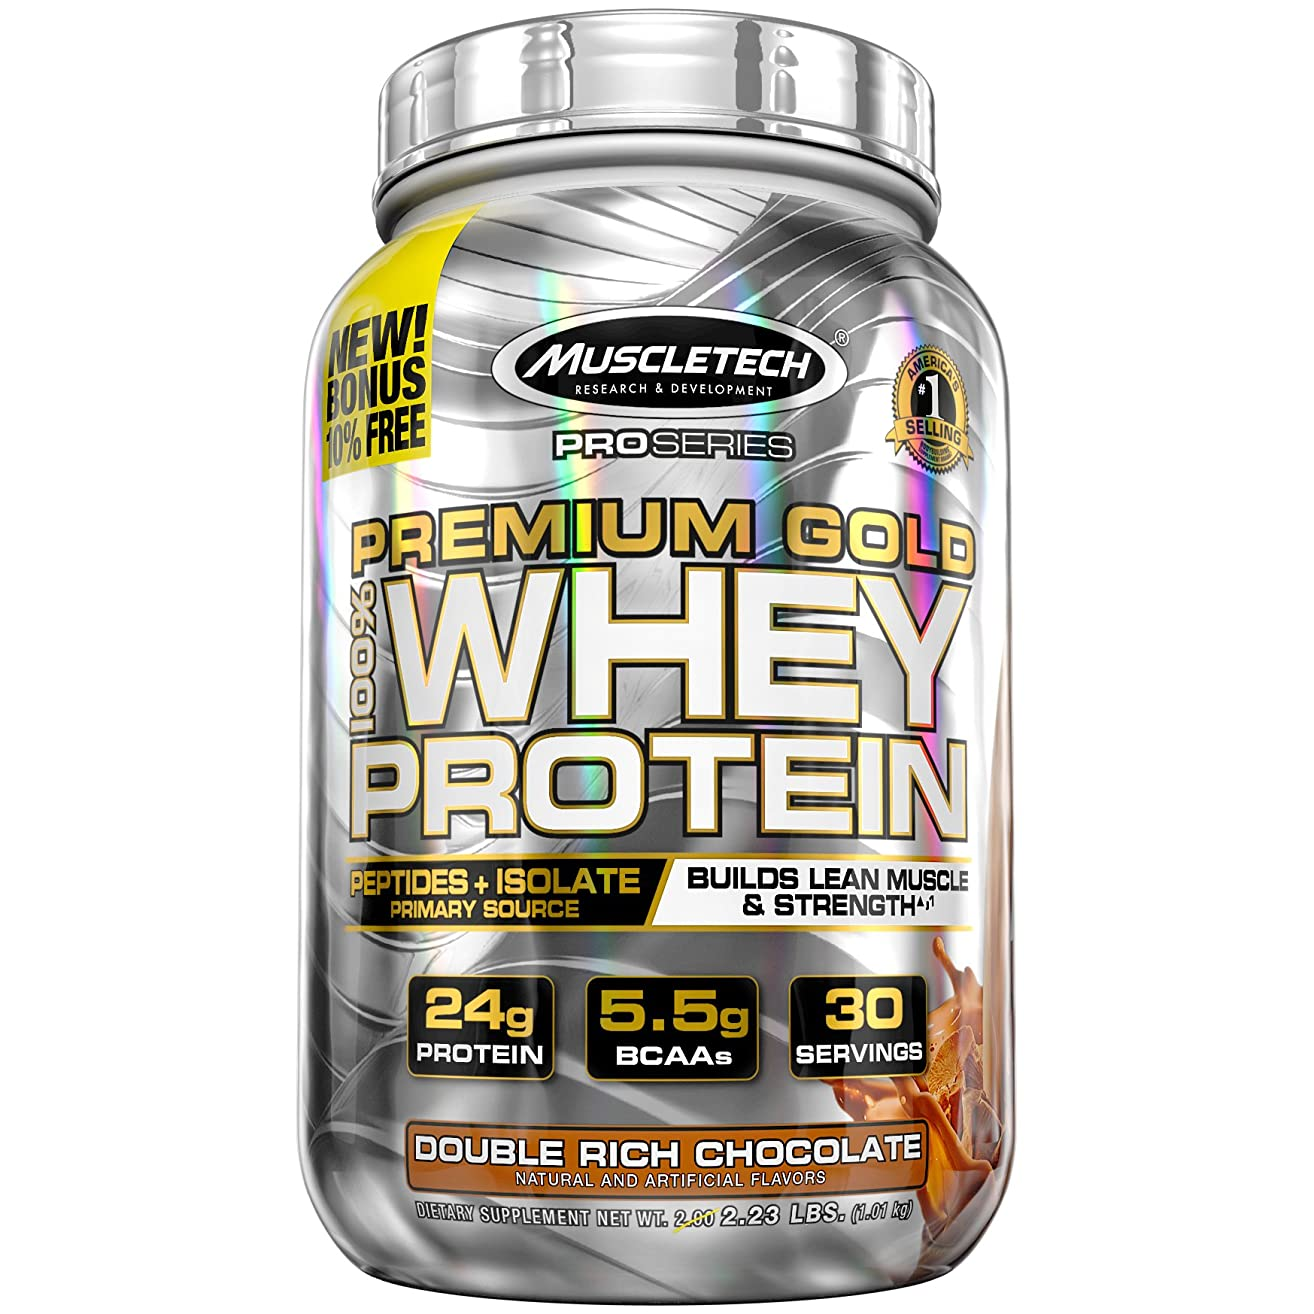 MuscleTech Premium Gold 100% Whey Protein Powder, Ultra Fast Absorbing Whey Peptides & Whey Protein Isolate, Double Rich Chocolate, 35.6 Ounce